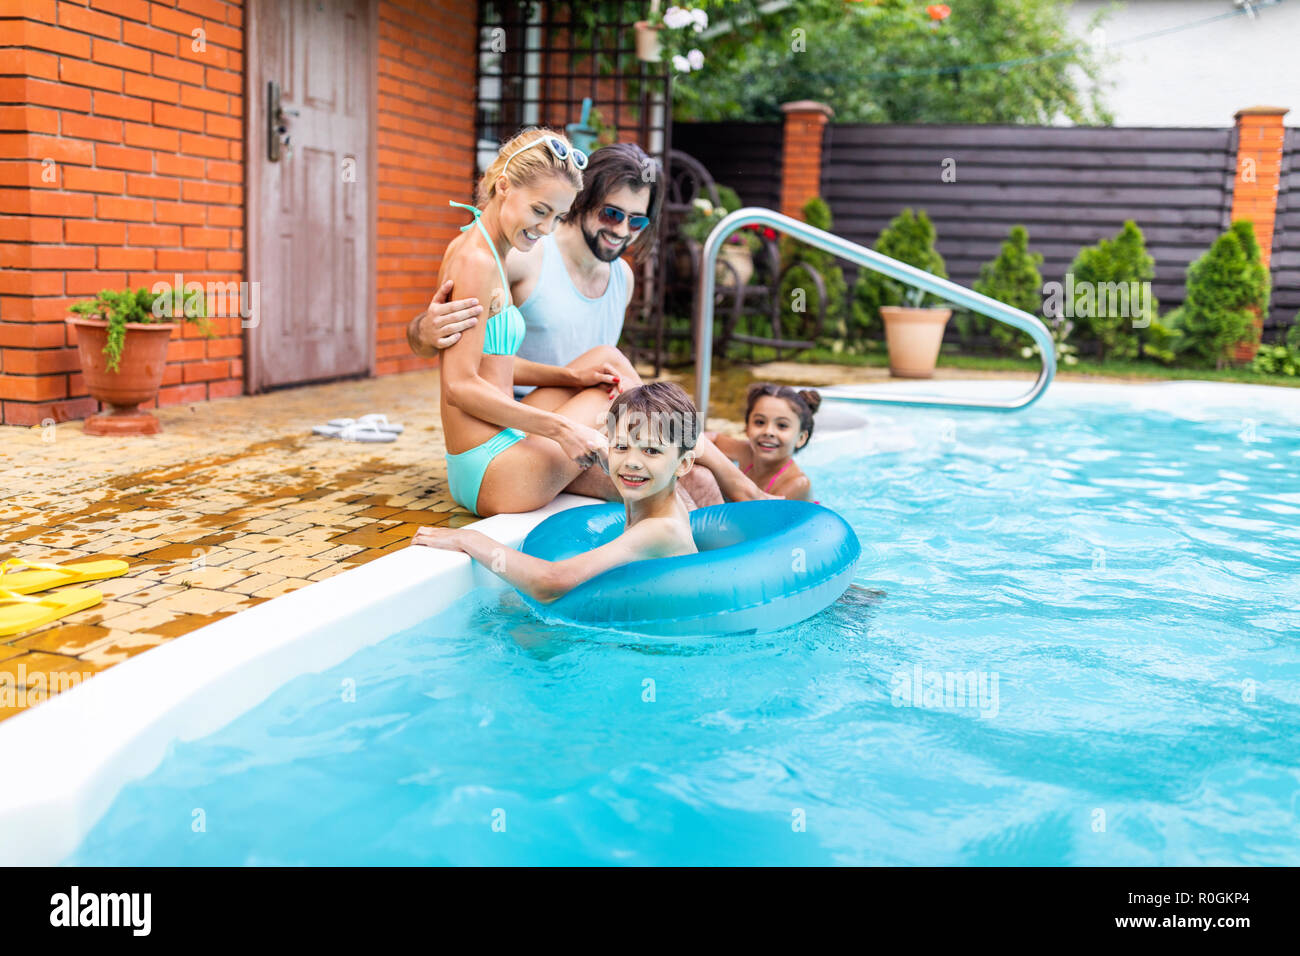 family spending time near swimming pool at countryside backyard on summer day - Stock Image